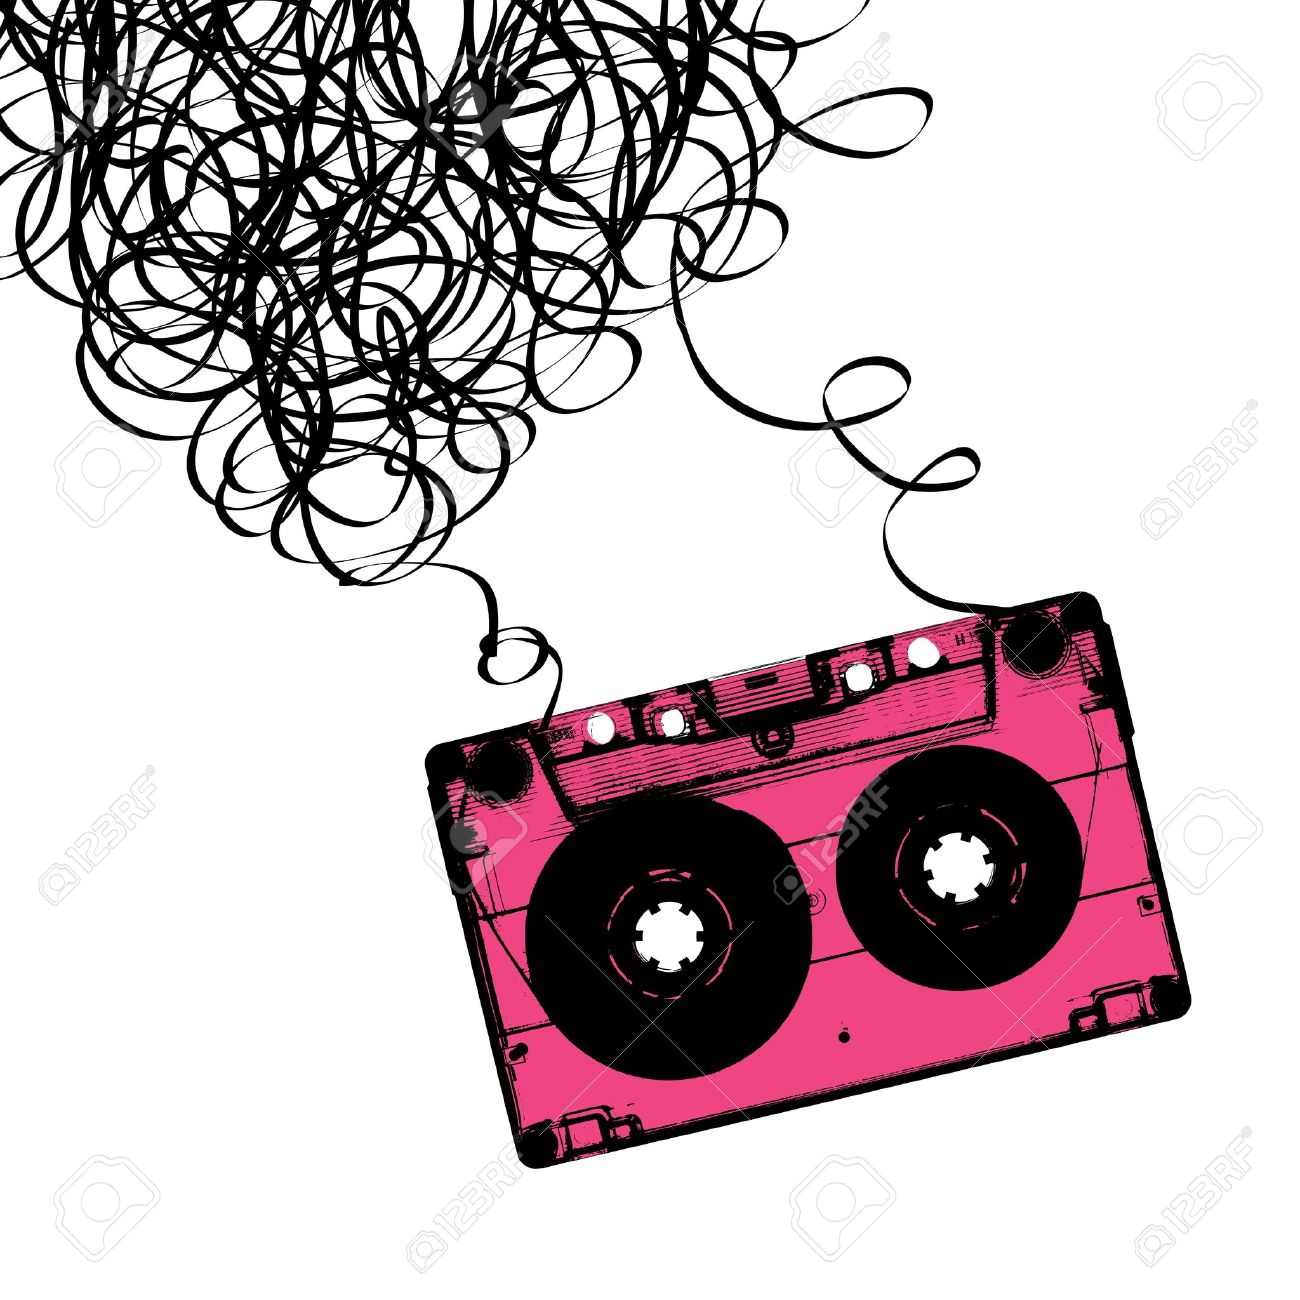 Audiocassette Tape With Tangled. Royalty Free Cliparts, Vectors.